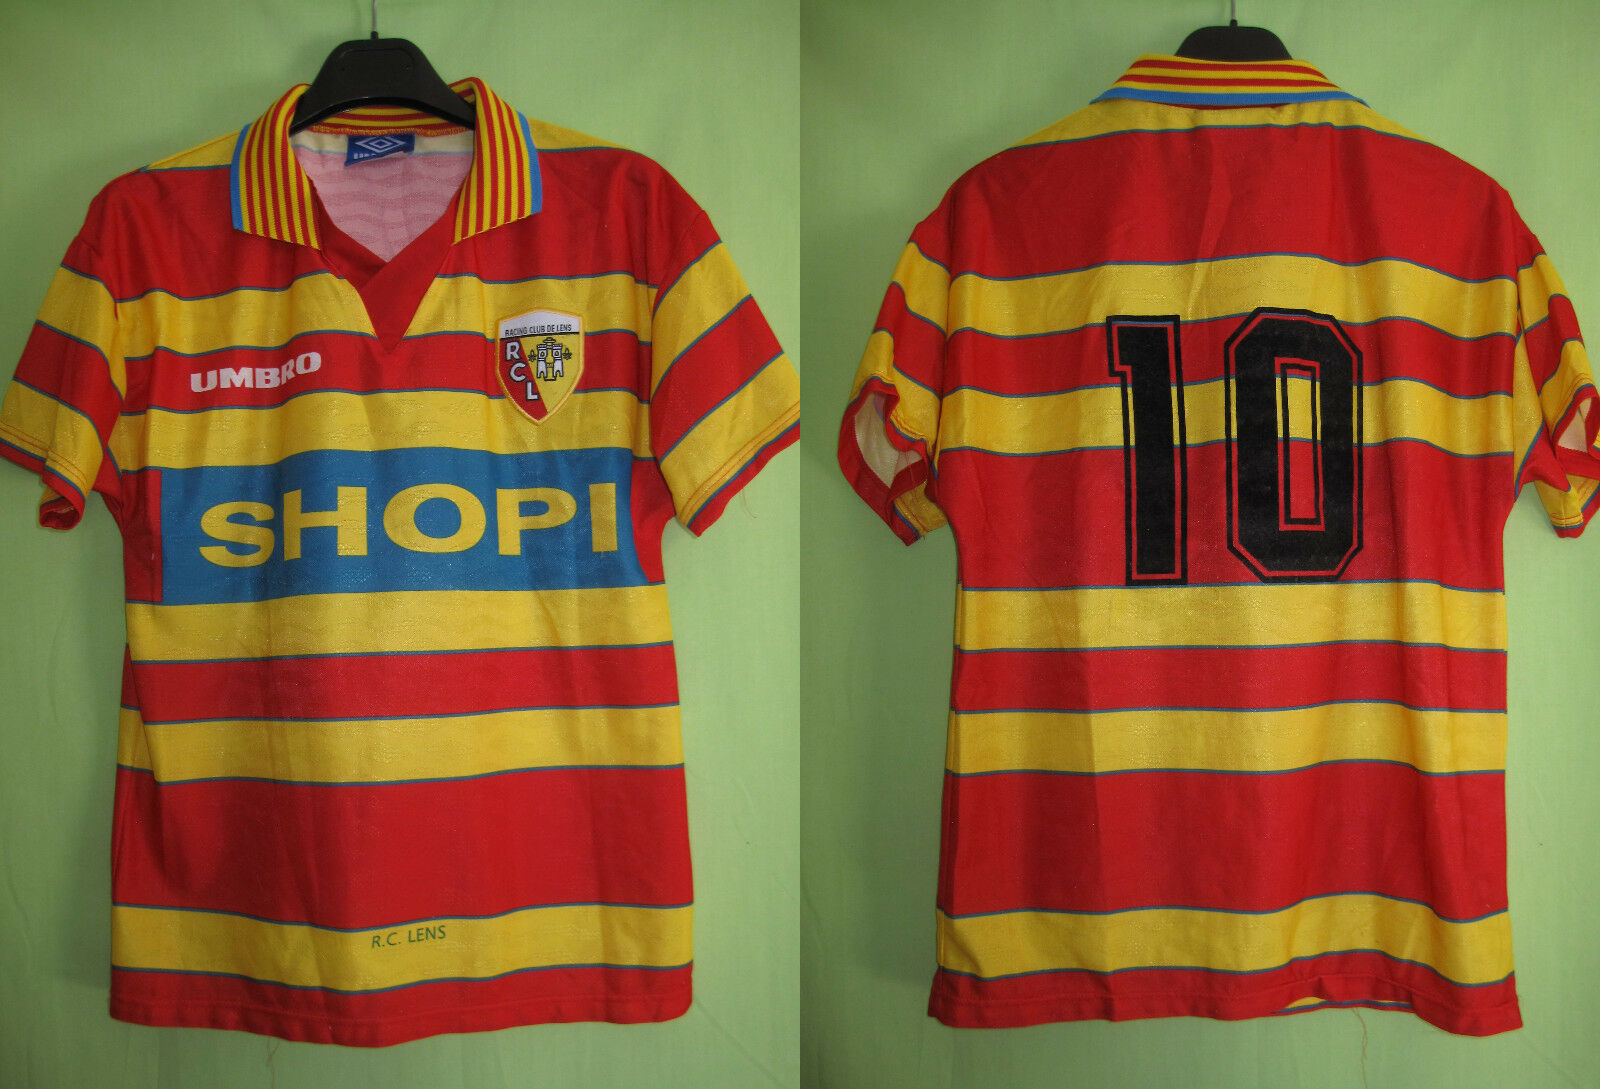 Maillot Racing Club de Lens Shopi  10 RCL vintage jersey Football  S